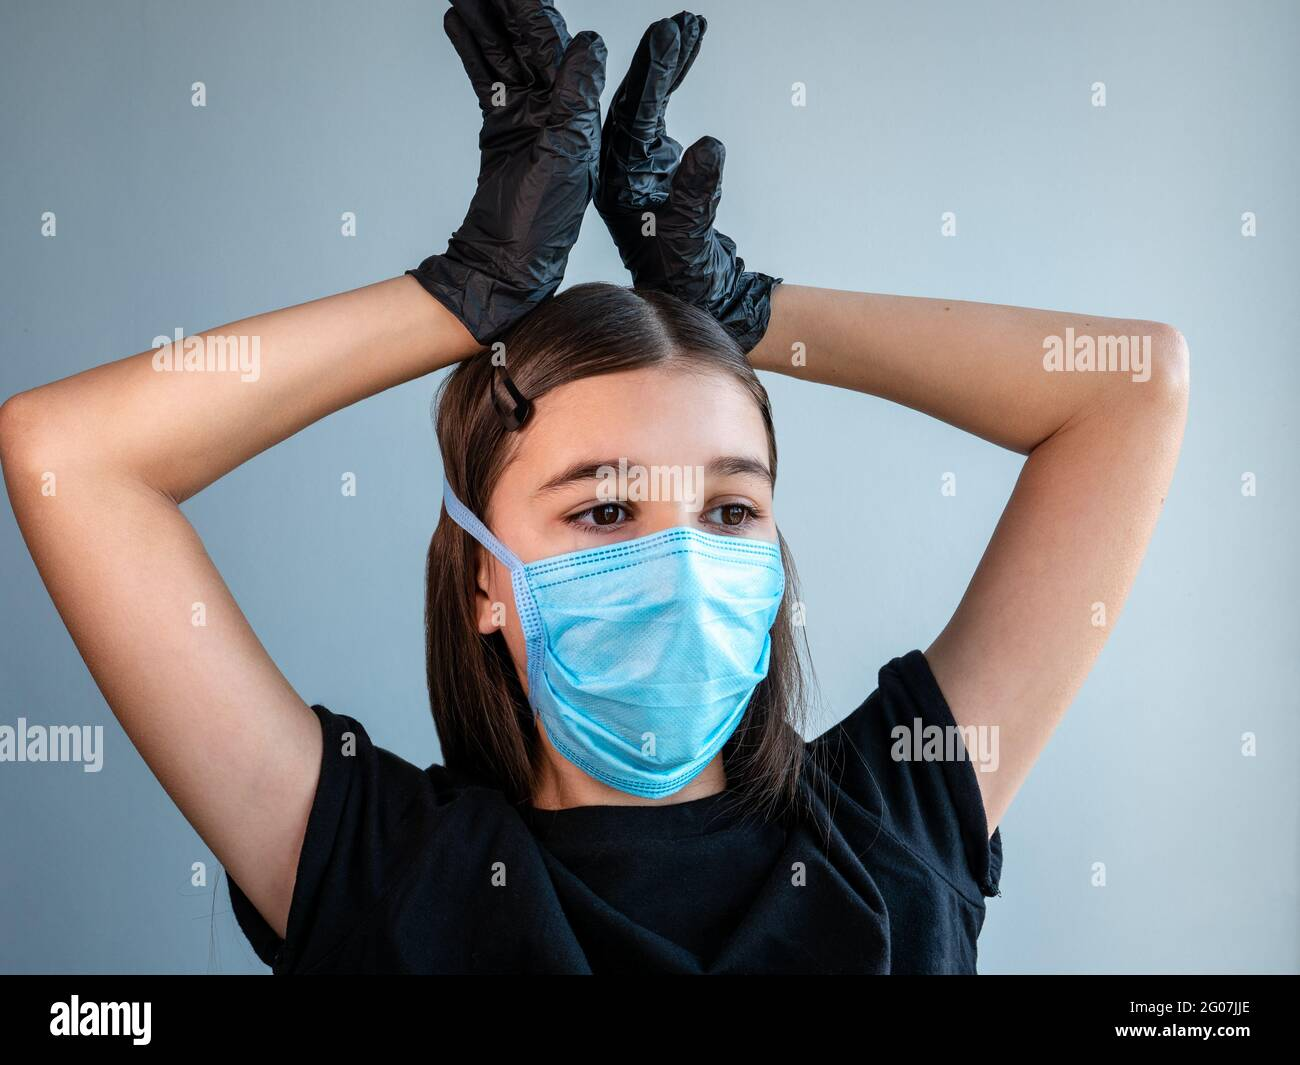 Female teenage girl in a blue protective medical face mask shows corona by holding her hands in black latex gloves above her head. Coronavirus concept Stock Photo